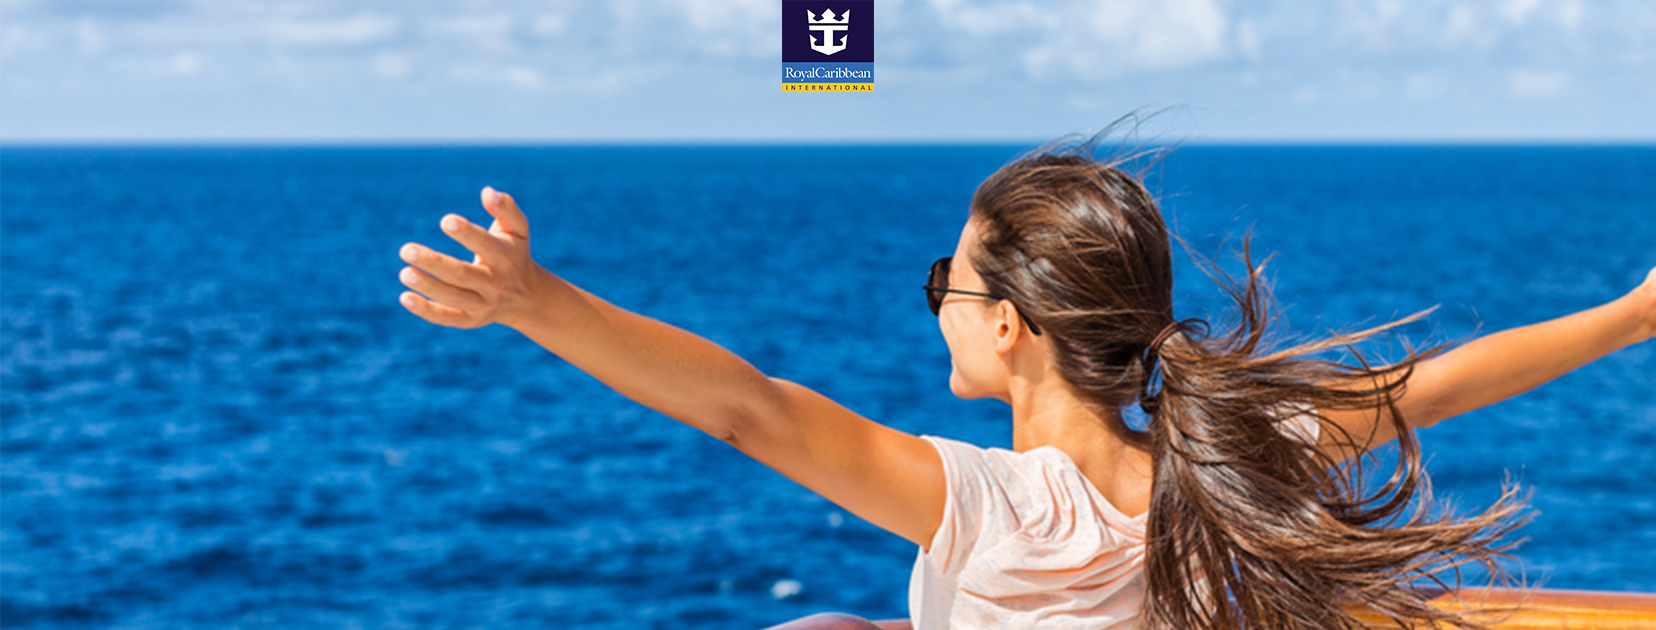 <p>30% OFF EVERY GUEST </p>